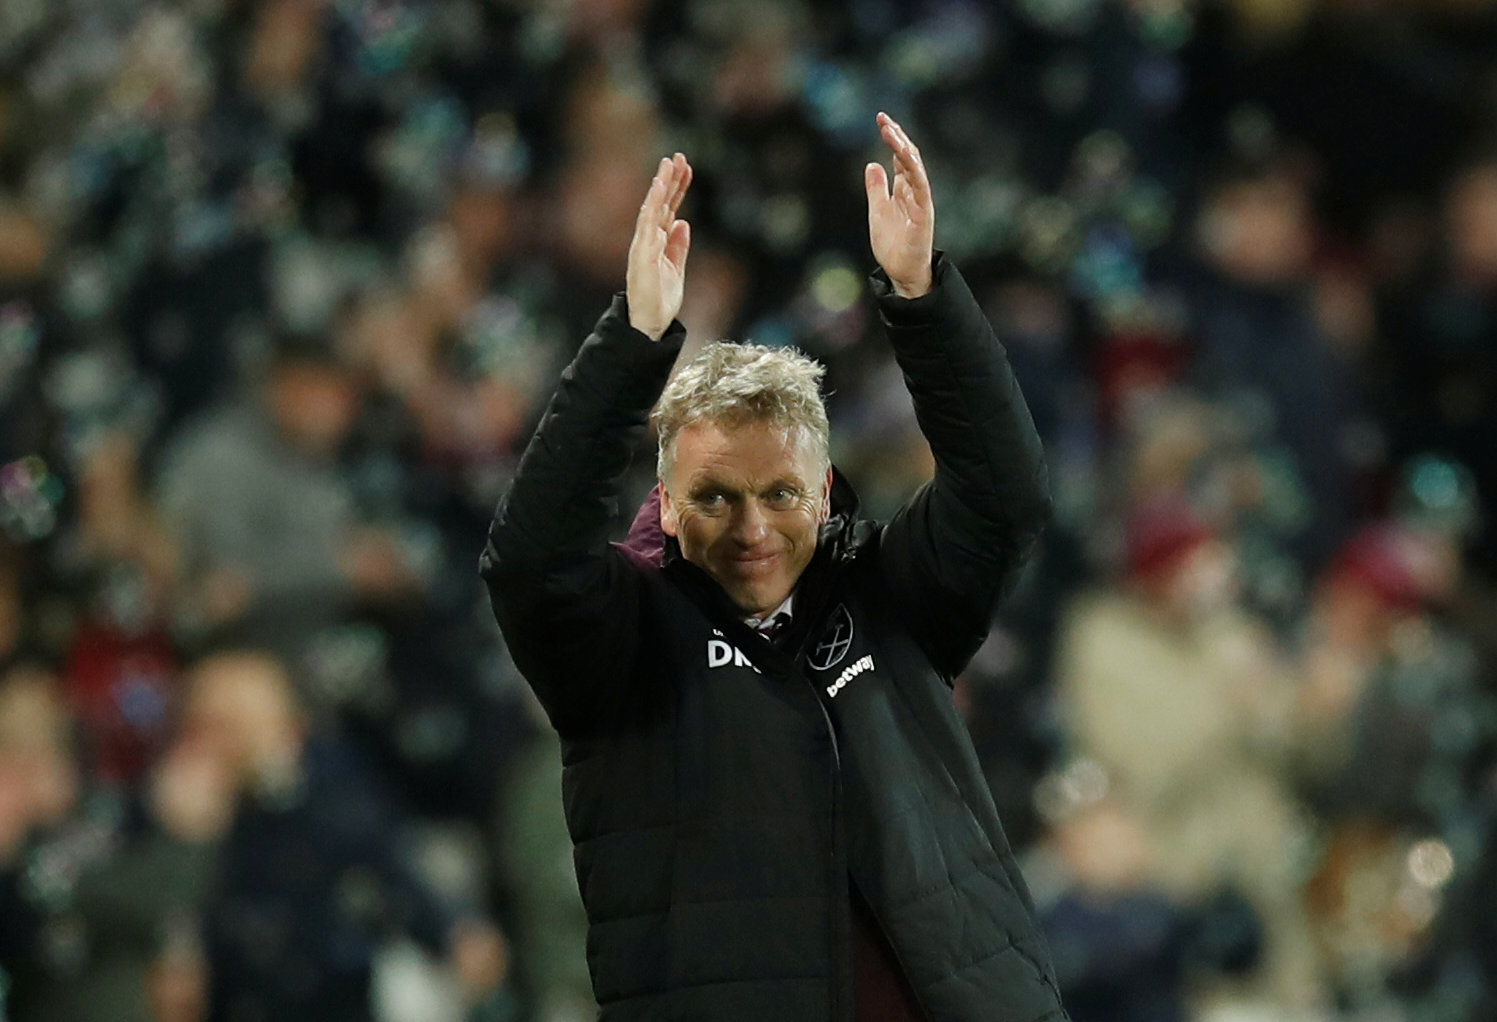 Aiming to be looking up: David Moyes. Picture: Action Images